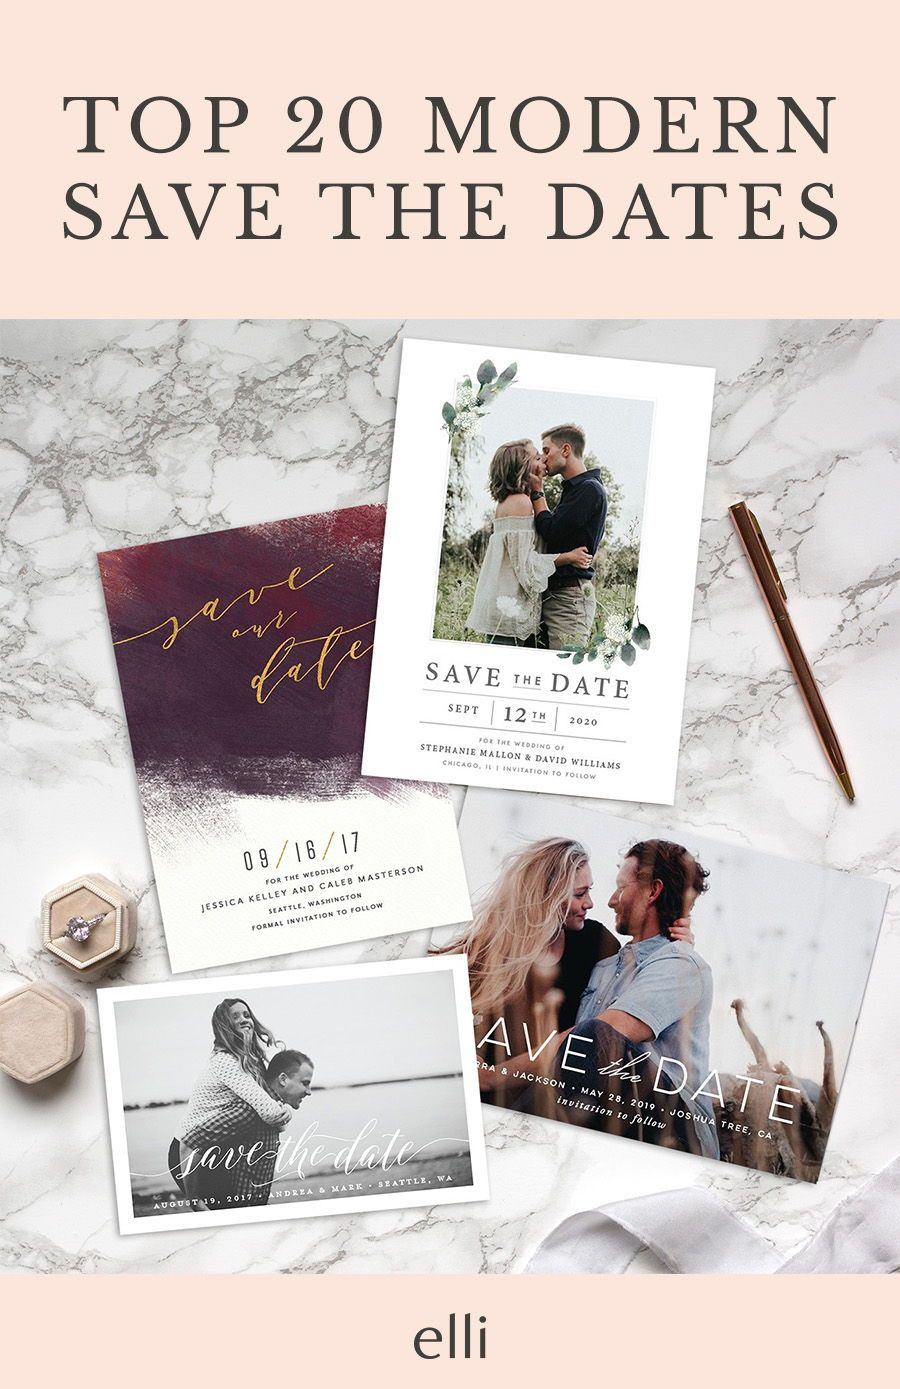 Top 20 Modern Save The Date Cards To Announce Your Wedding Date Savethedates Savethedatecards Wedding Planning Websites Wedding Planning Save The Date Cards